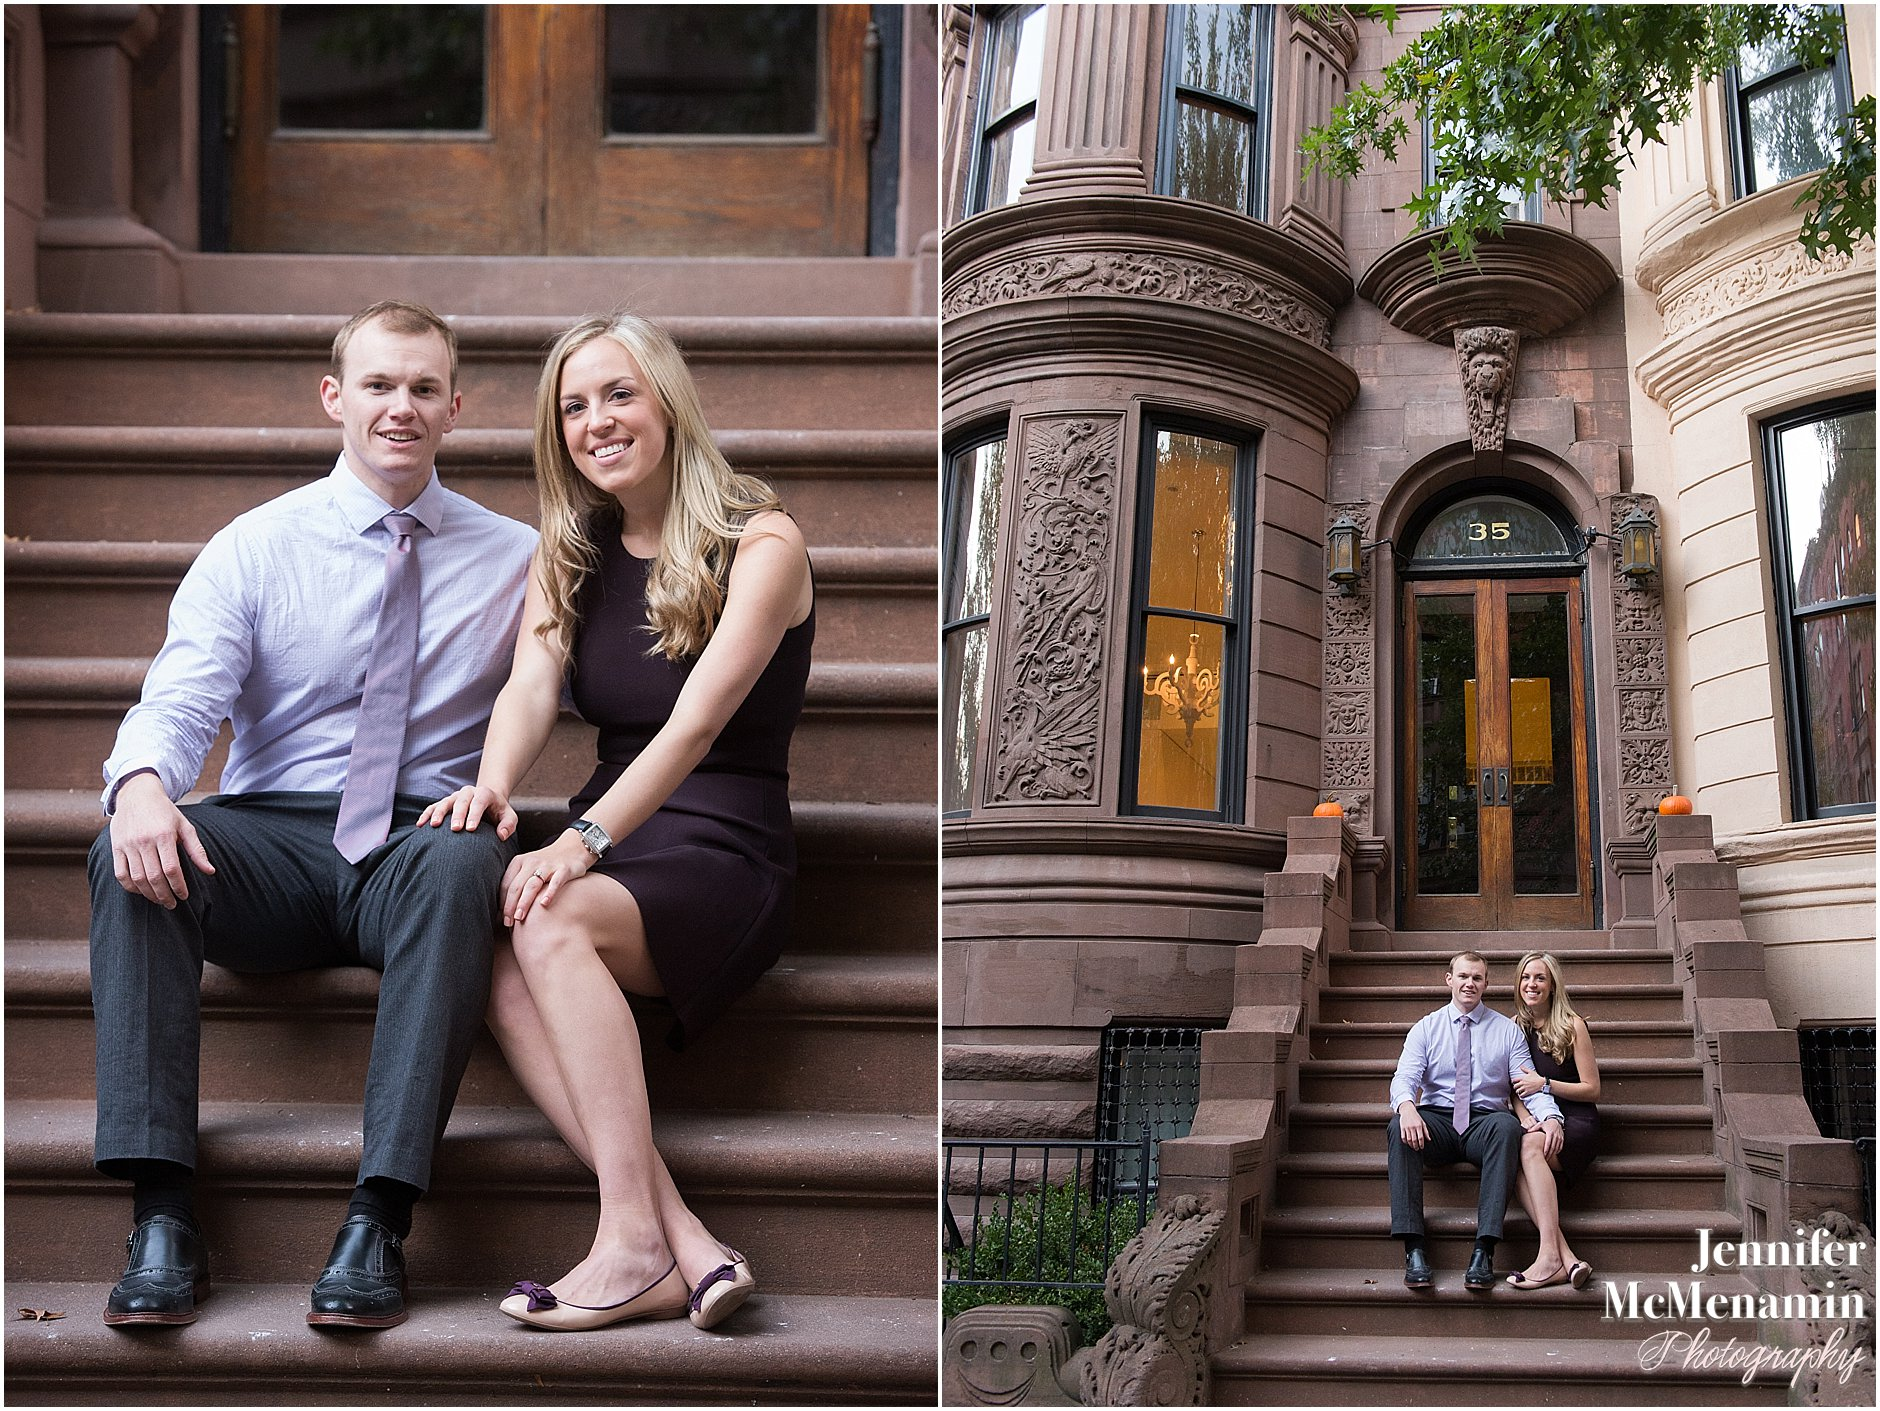 013-jennifer-mcmenamin-photography-nyc-engagement-photos_0011